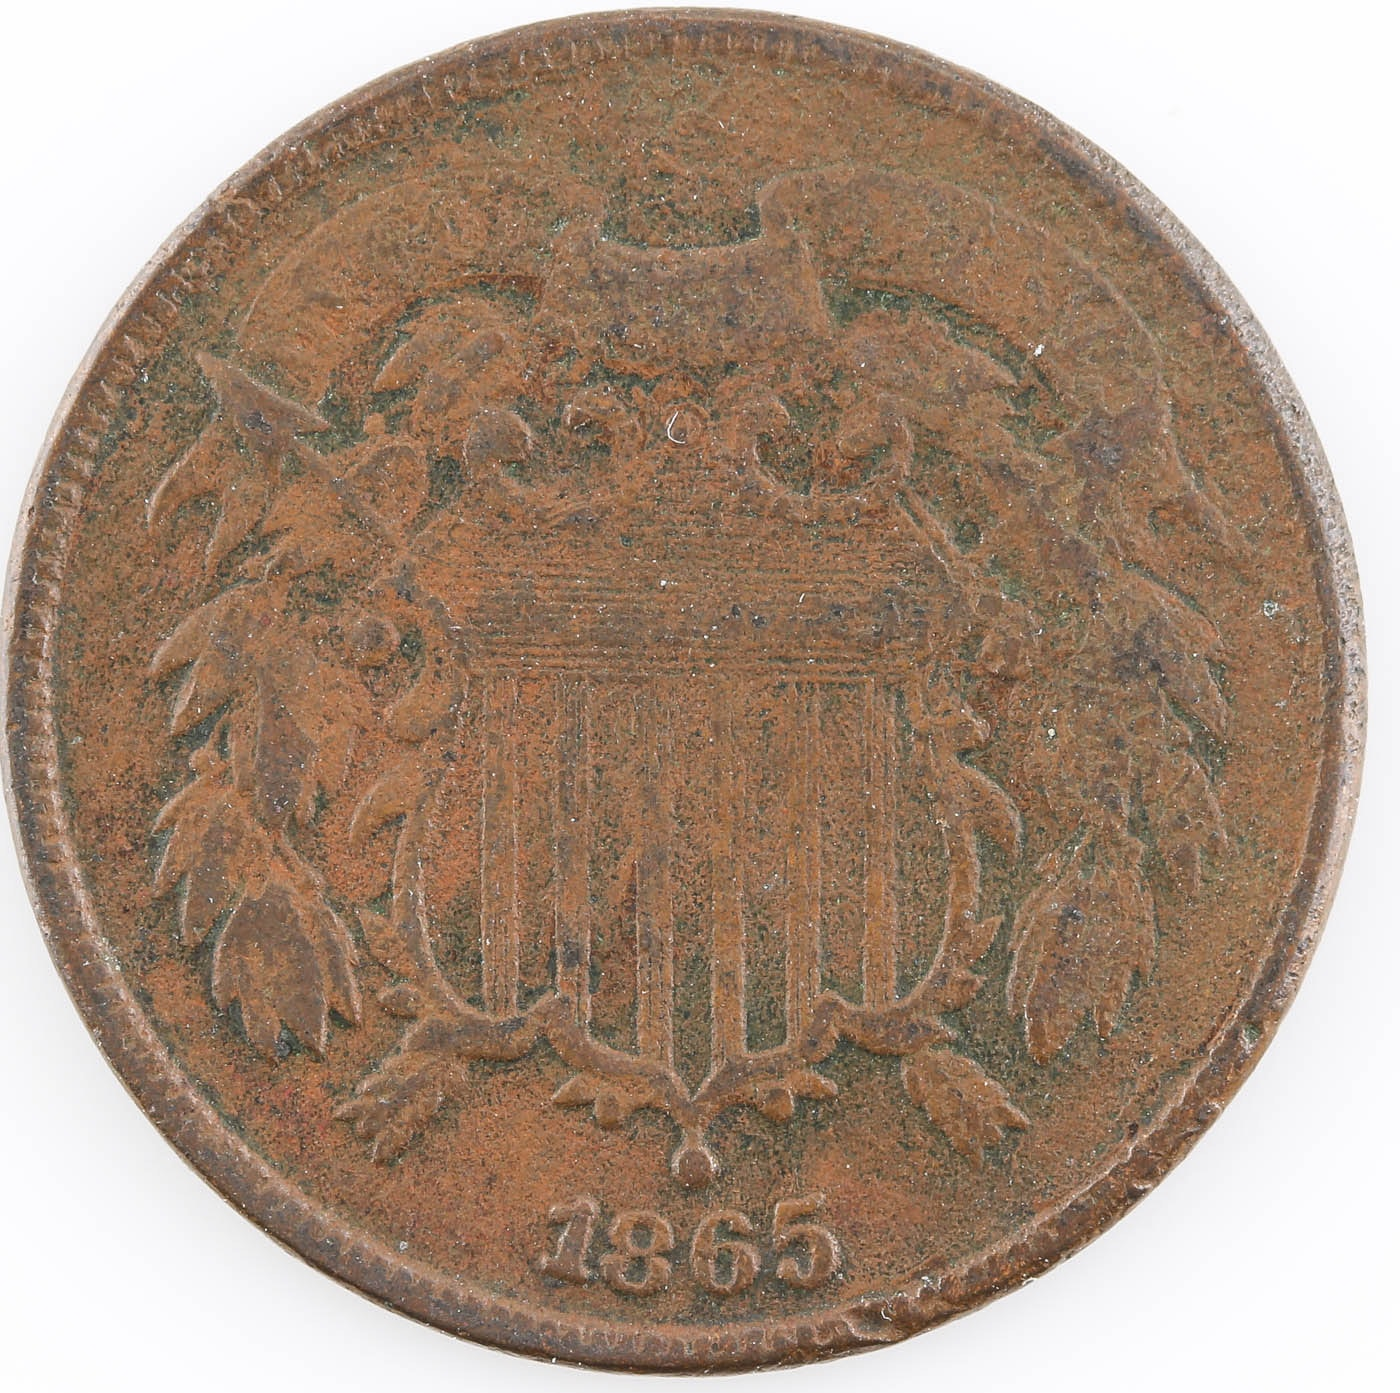 1865 Two Cent Coin